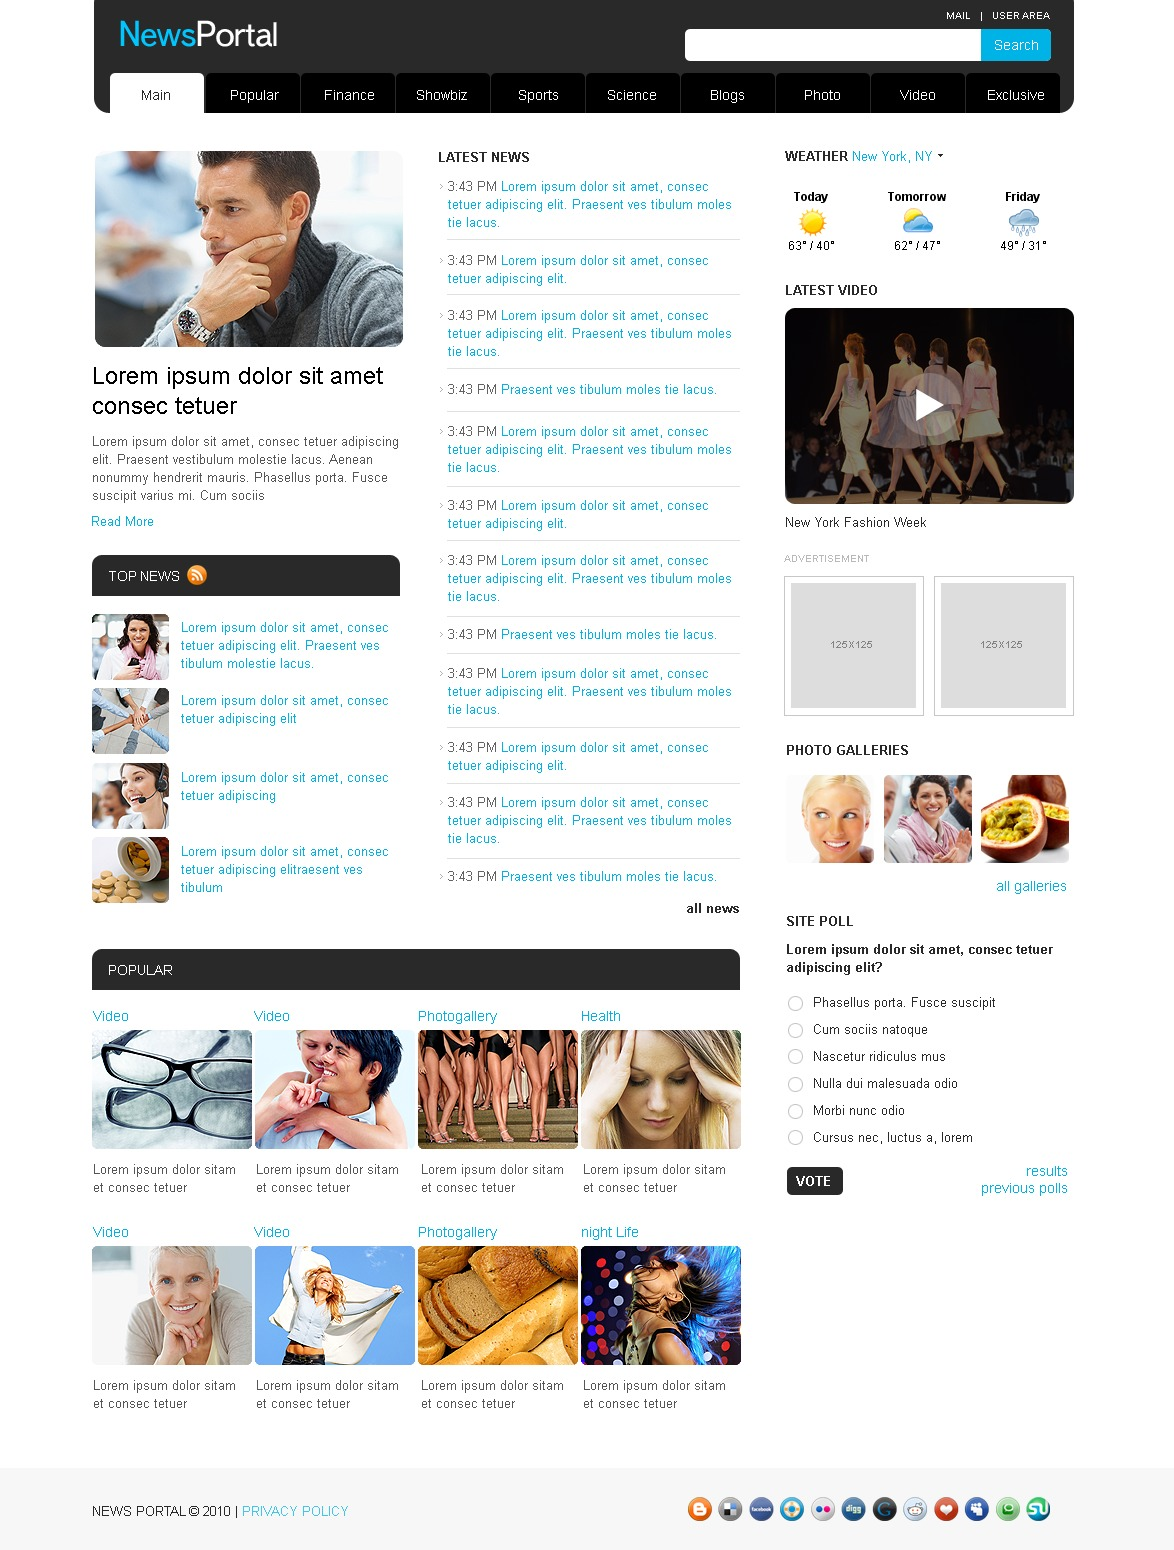 News Portal Website Template #28817